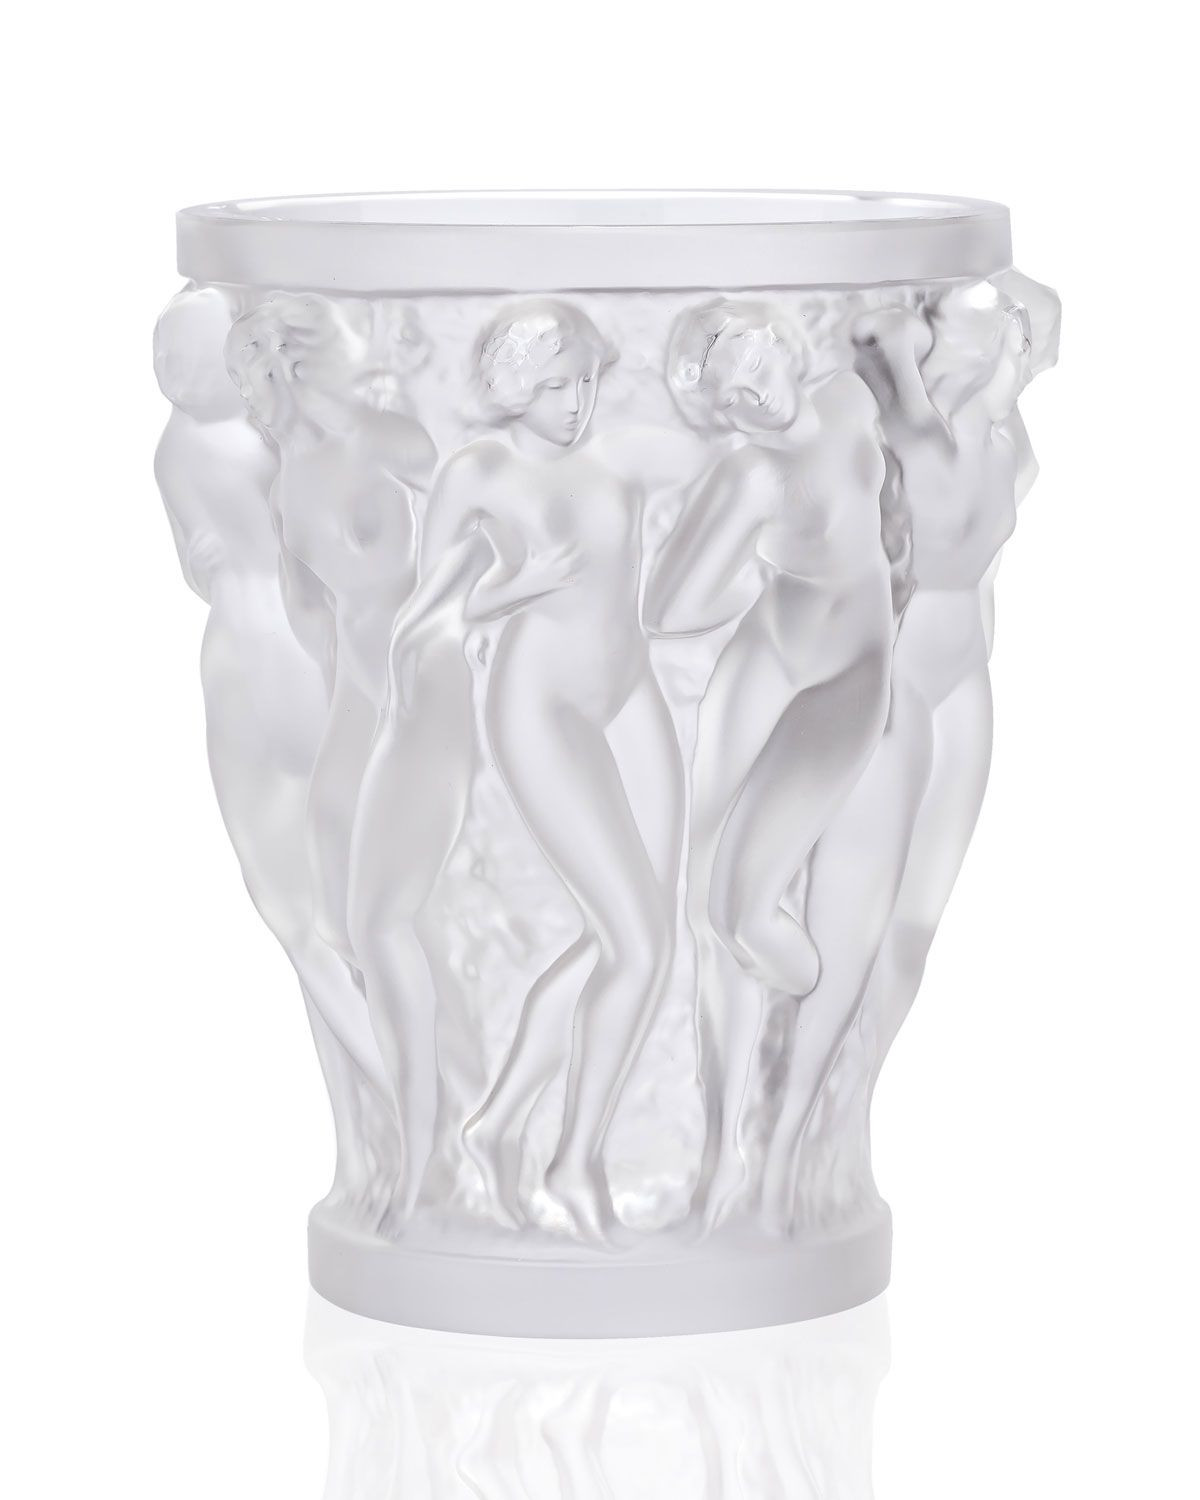 lalique elephant vase of lalique crystal compote crystal lalique pinterest with regard to 0dd20b386b6efdd55bd03877fc13f89a